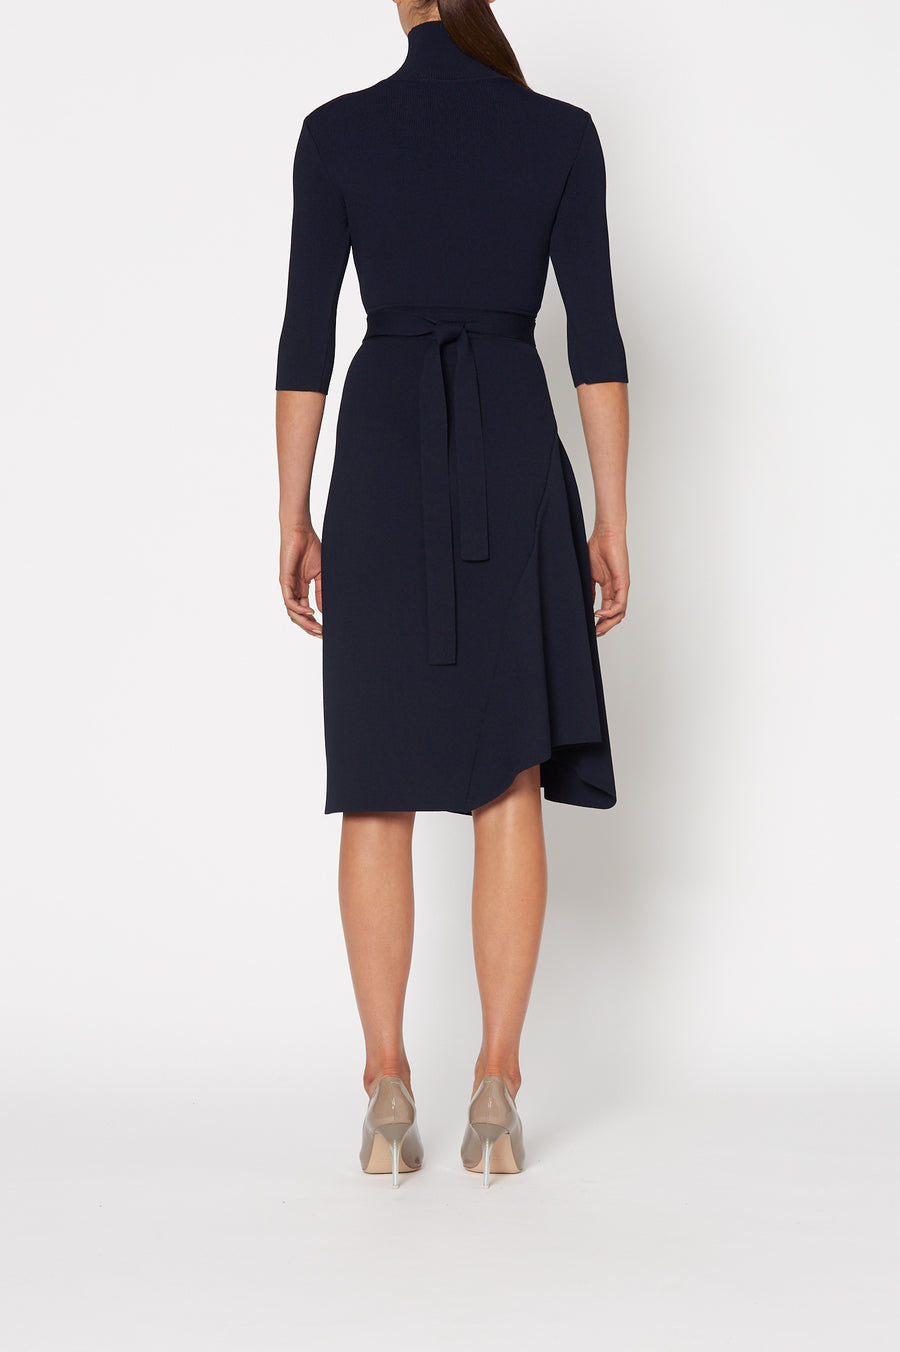 Crepe Knit Panel Dress, high neck, mid-length sleeves, draped panel hem, falls just below knee, belt in same material included, color navy.